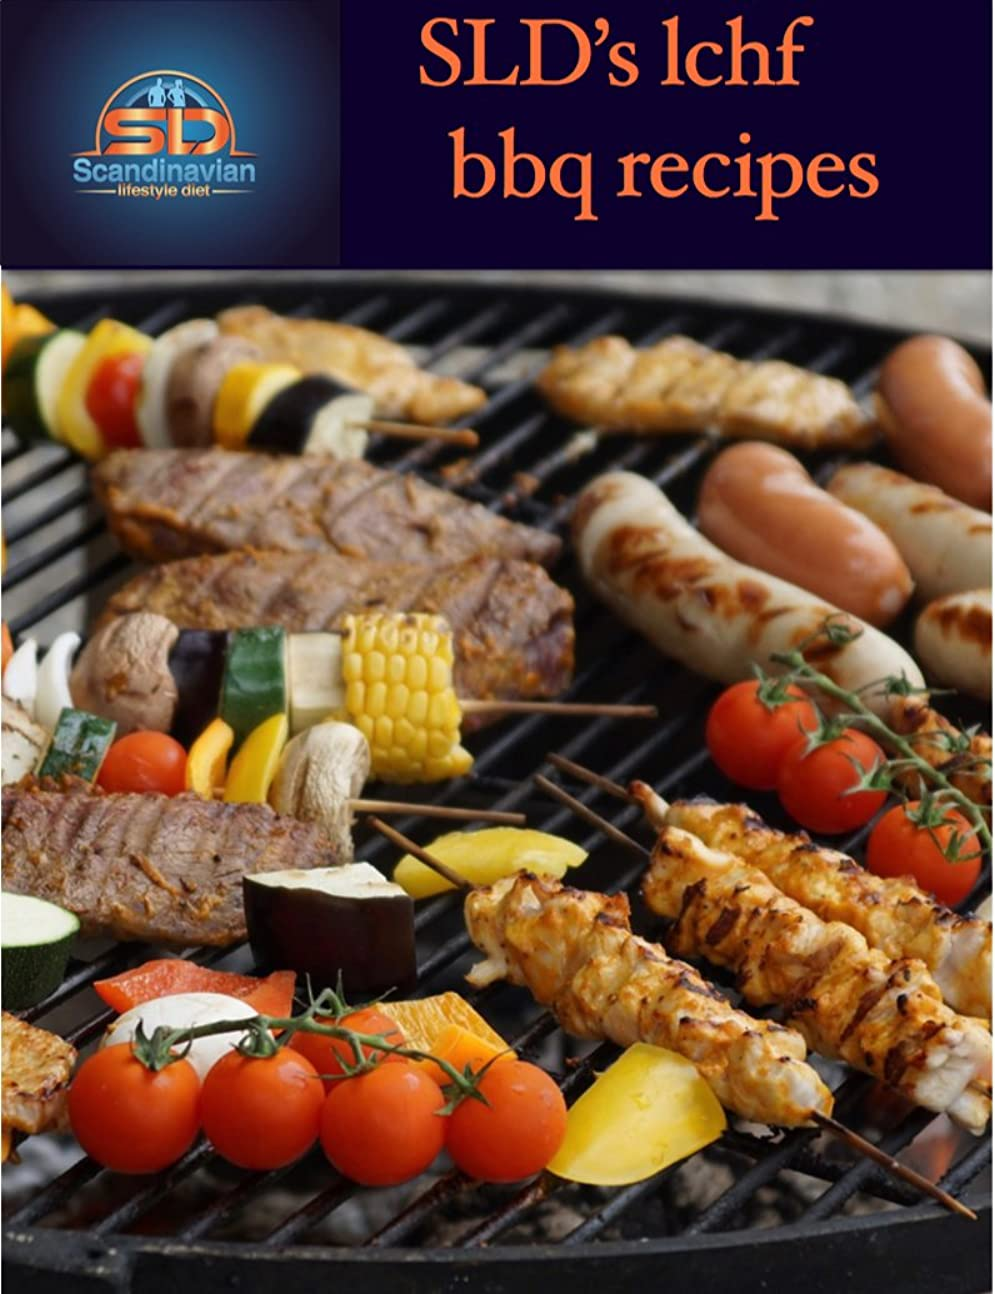 Scandinavian lifestyle diets LCHF low carb high fat  bbq weight loss recipes: Mouthwatering sides, sauces and dressing to go with your grilled meat, fish ... high fat recipes Book 1) (English Edition)